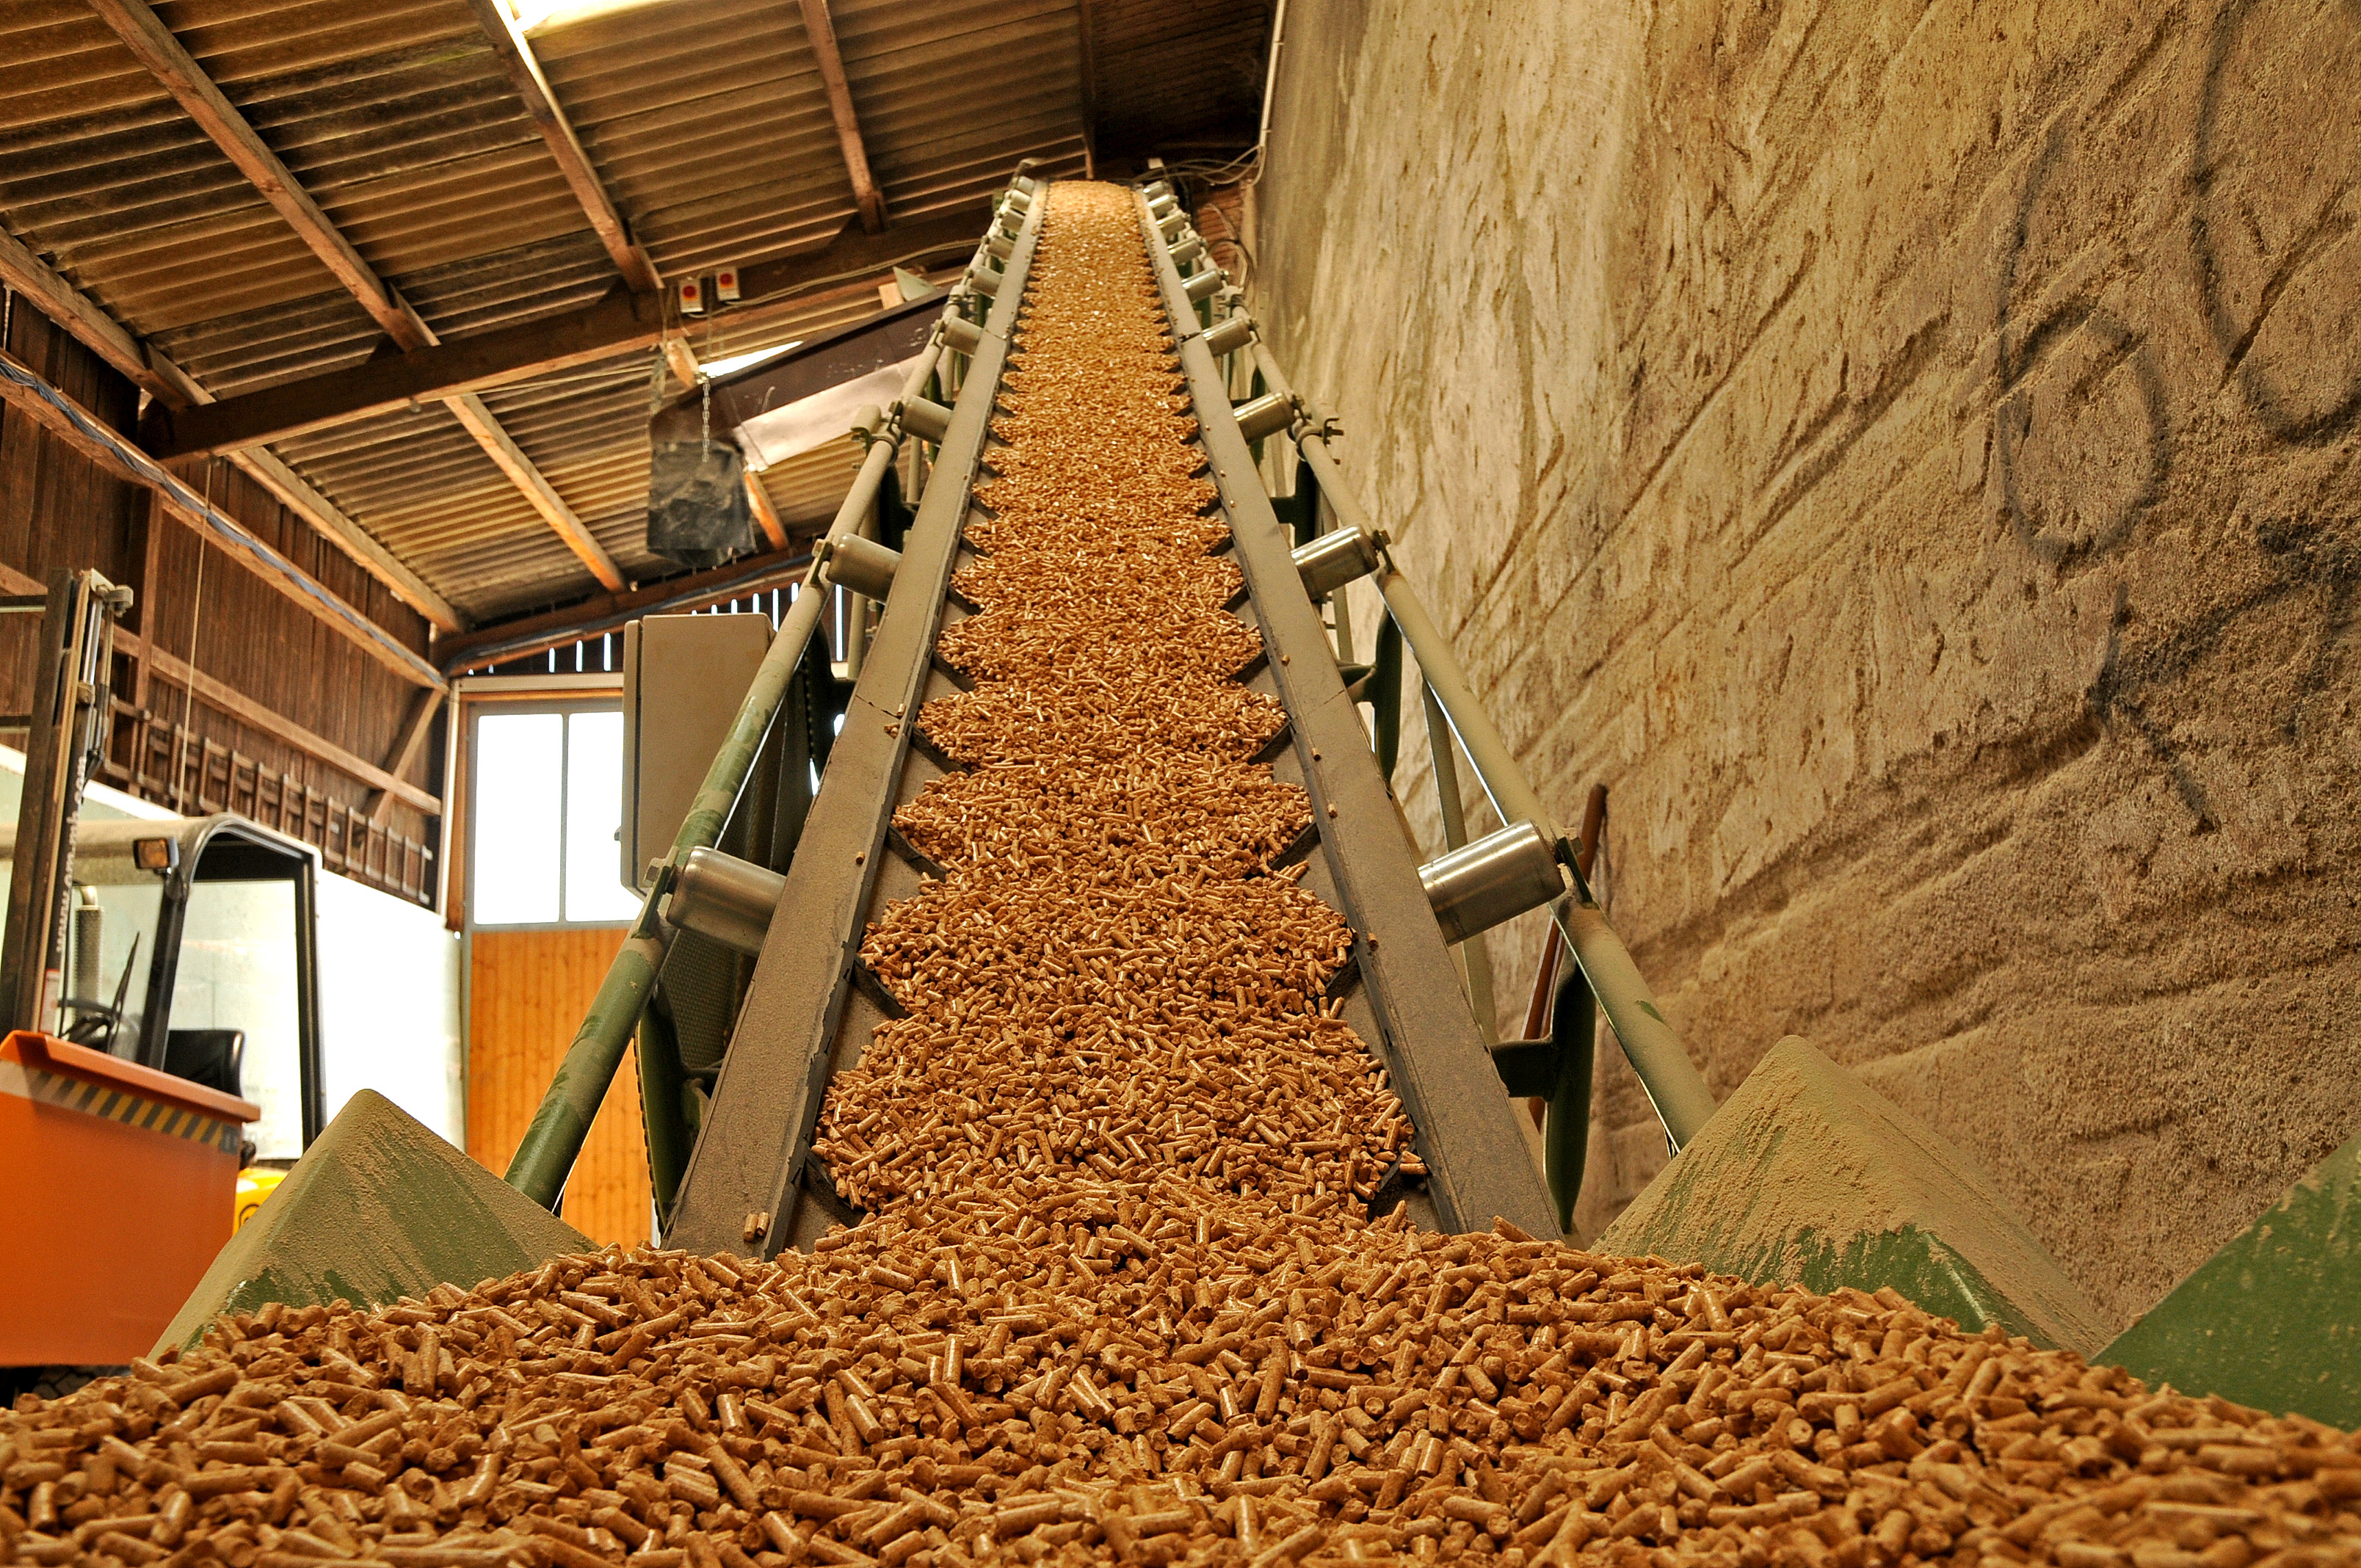 Biomass Energy and Fuels by madelined